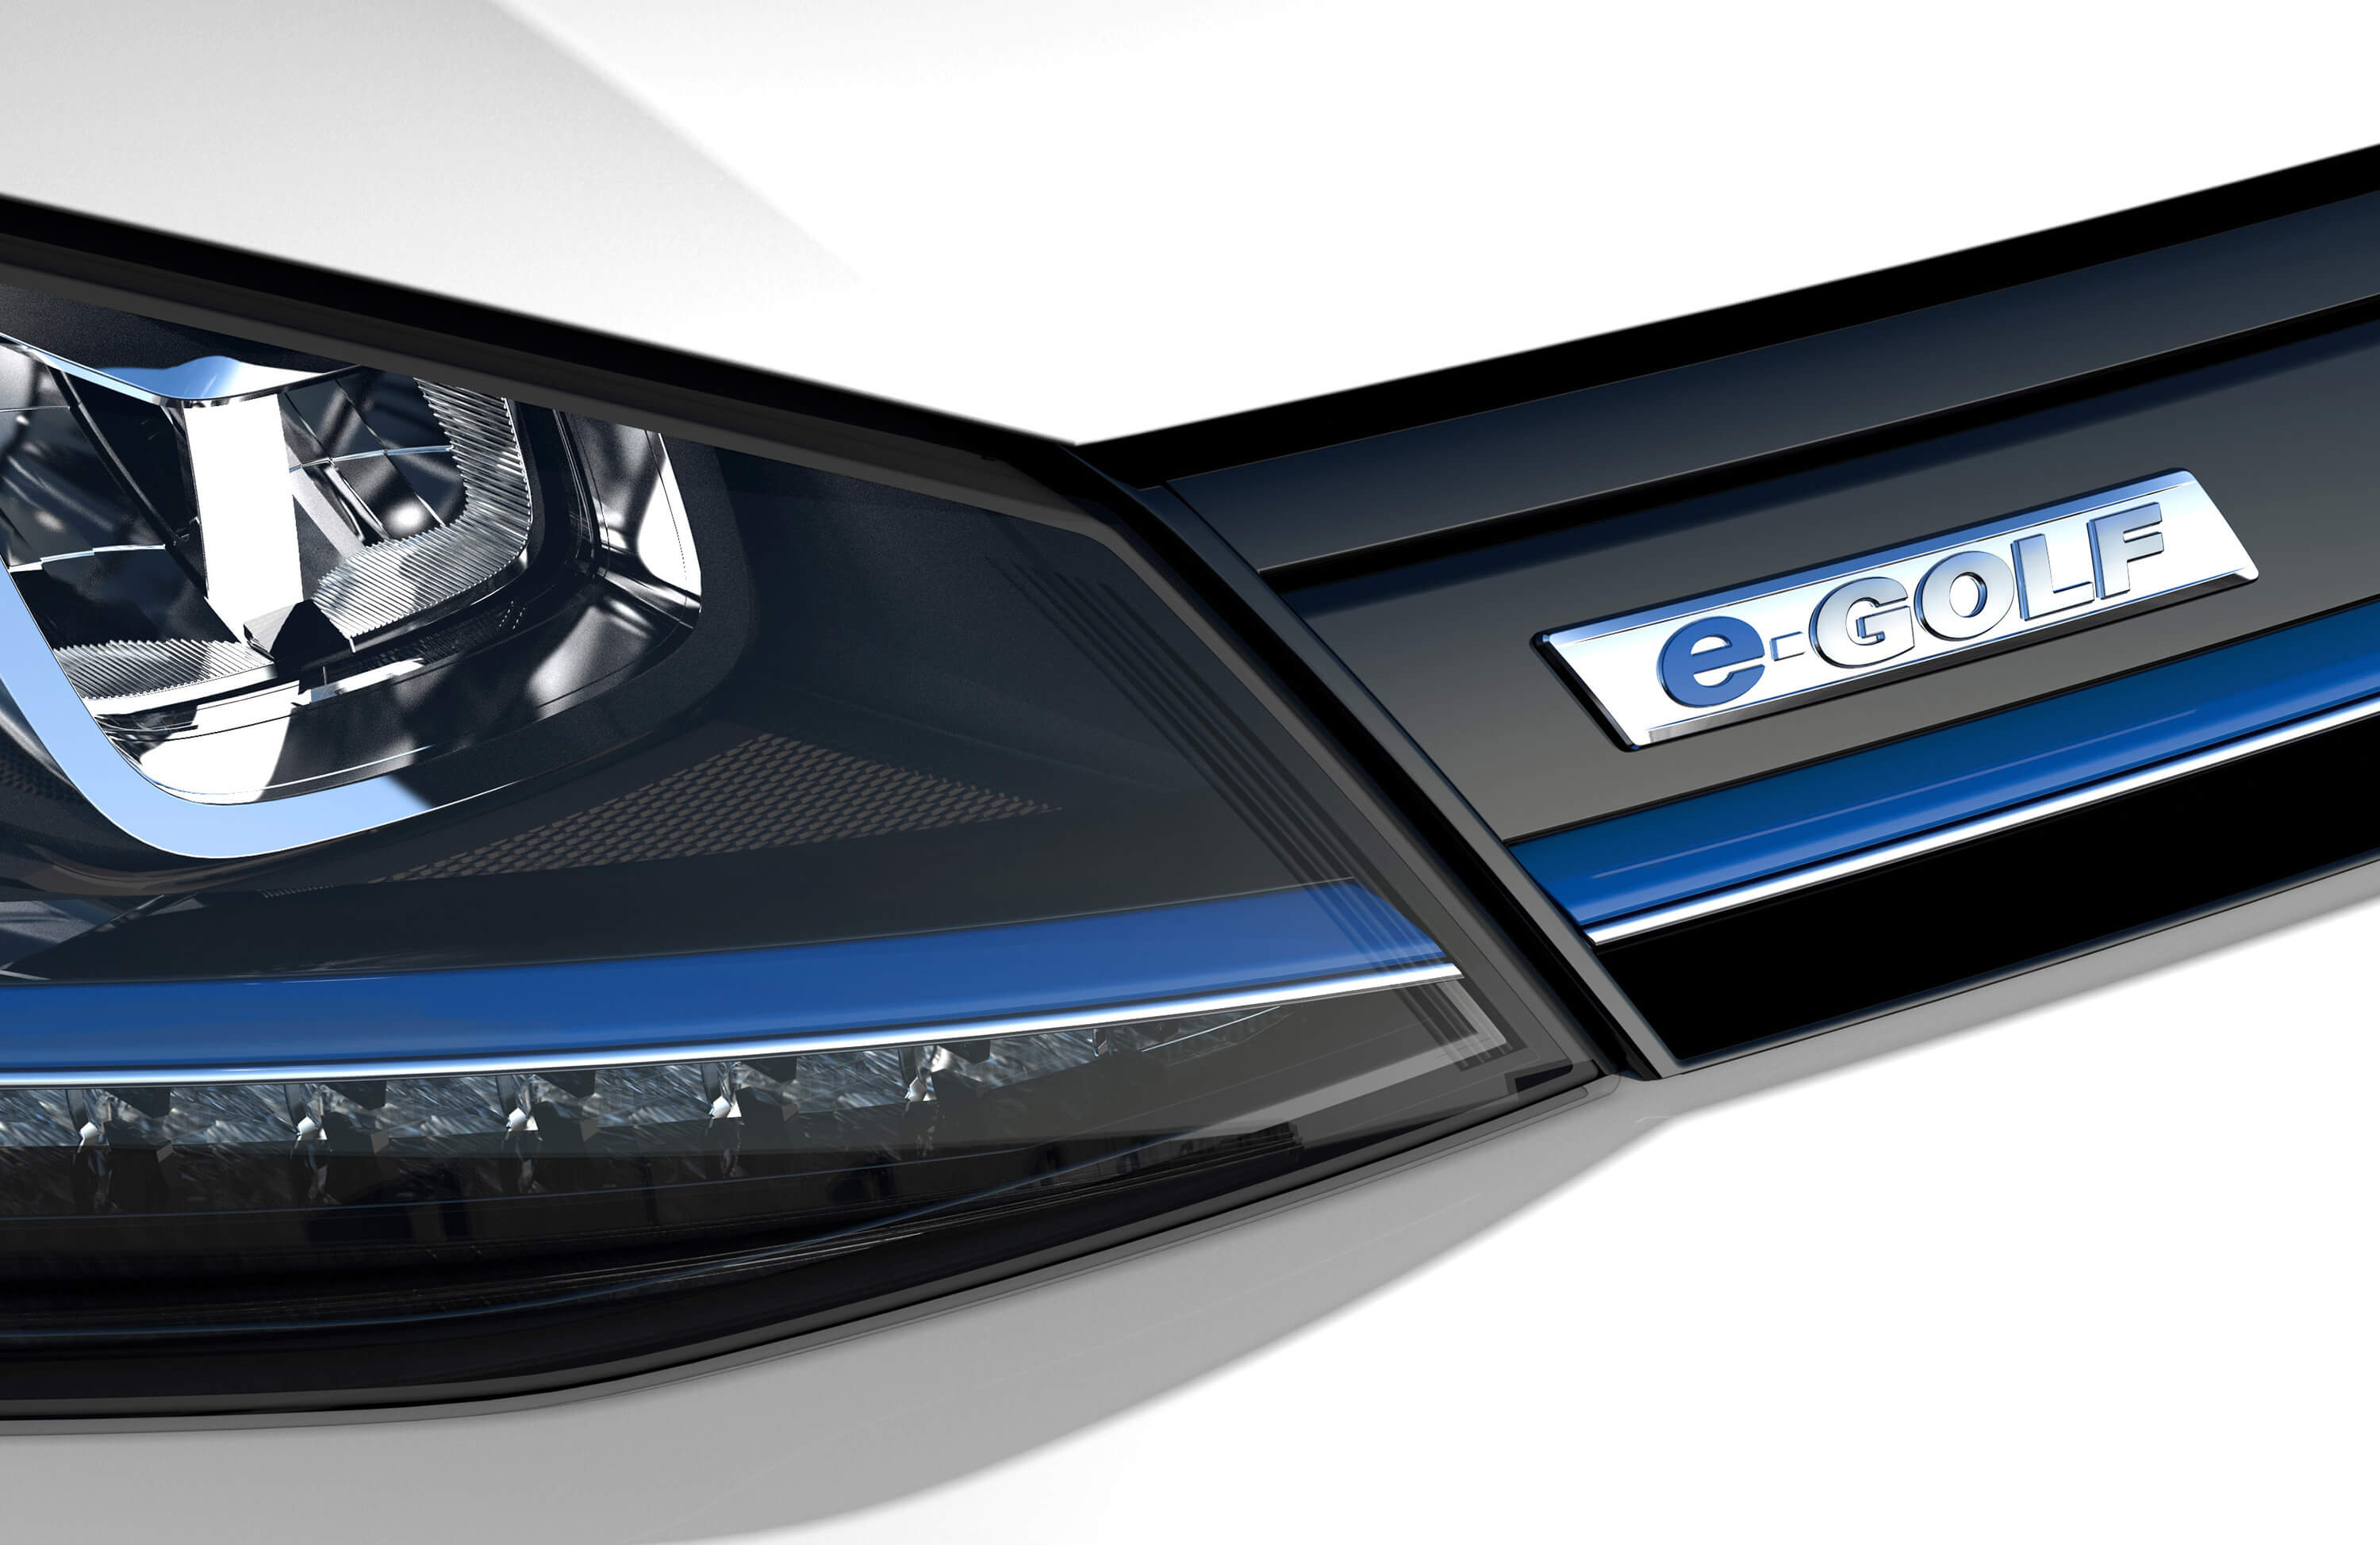 2015 Vw E Golf Page To Be Released Uncategorized